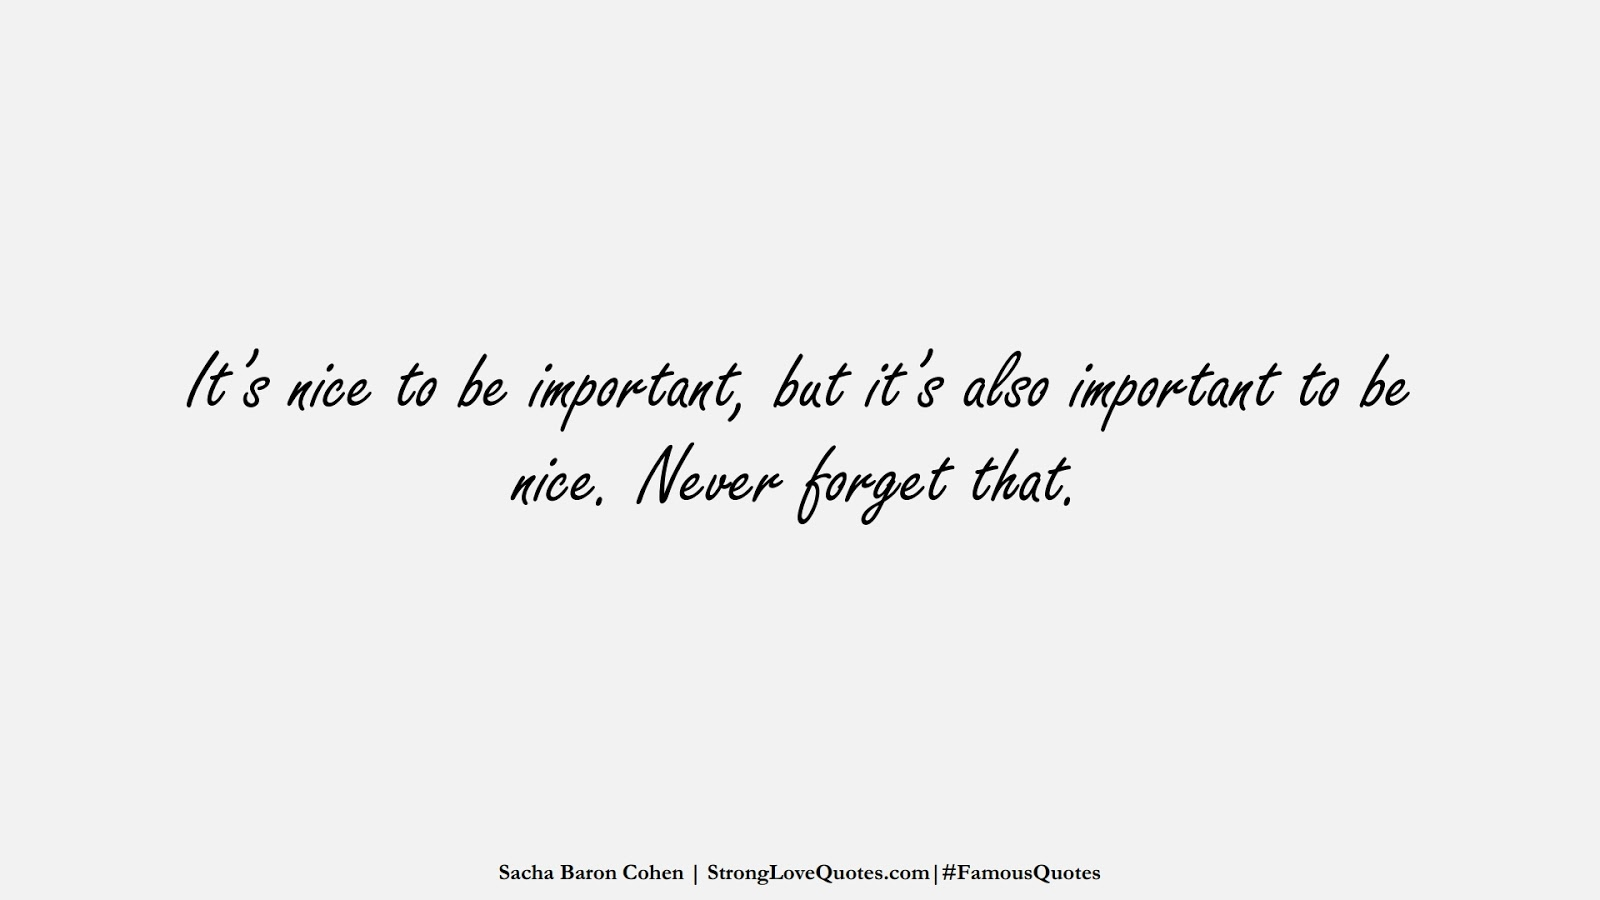 It's nice to be important, but it's also important to be nice. Never forget that. (Sacha Baron Cohen);  #FamousQuotes